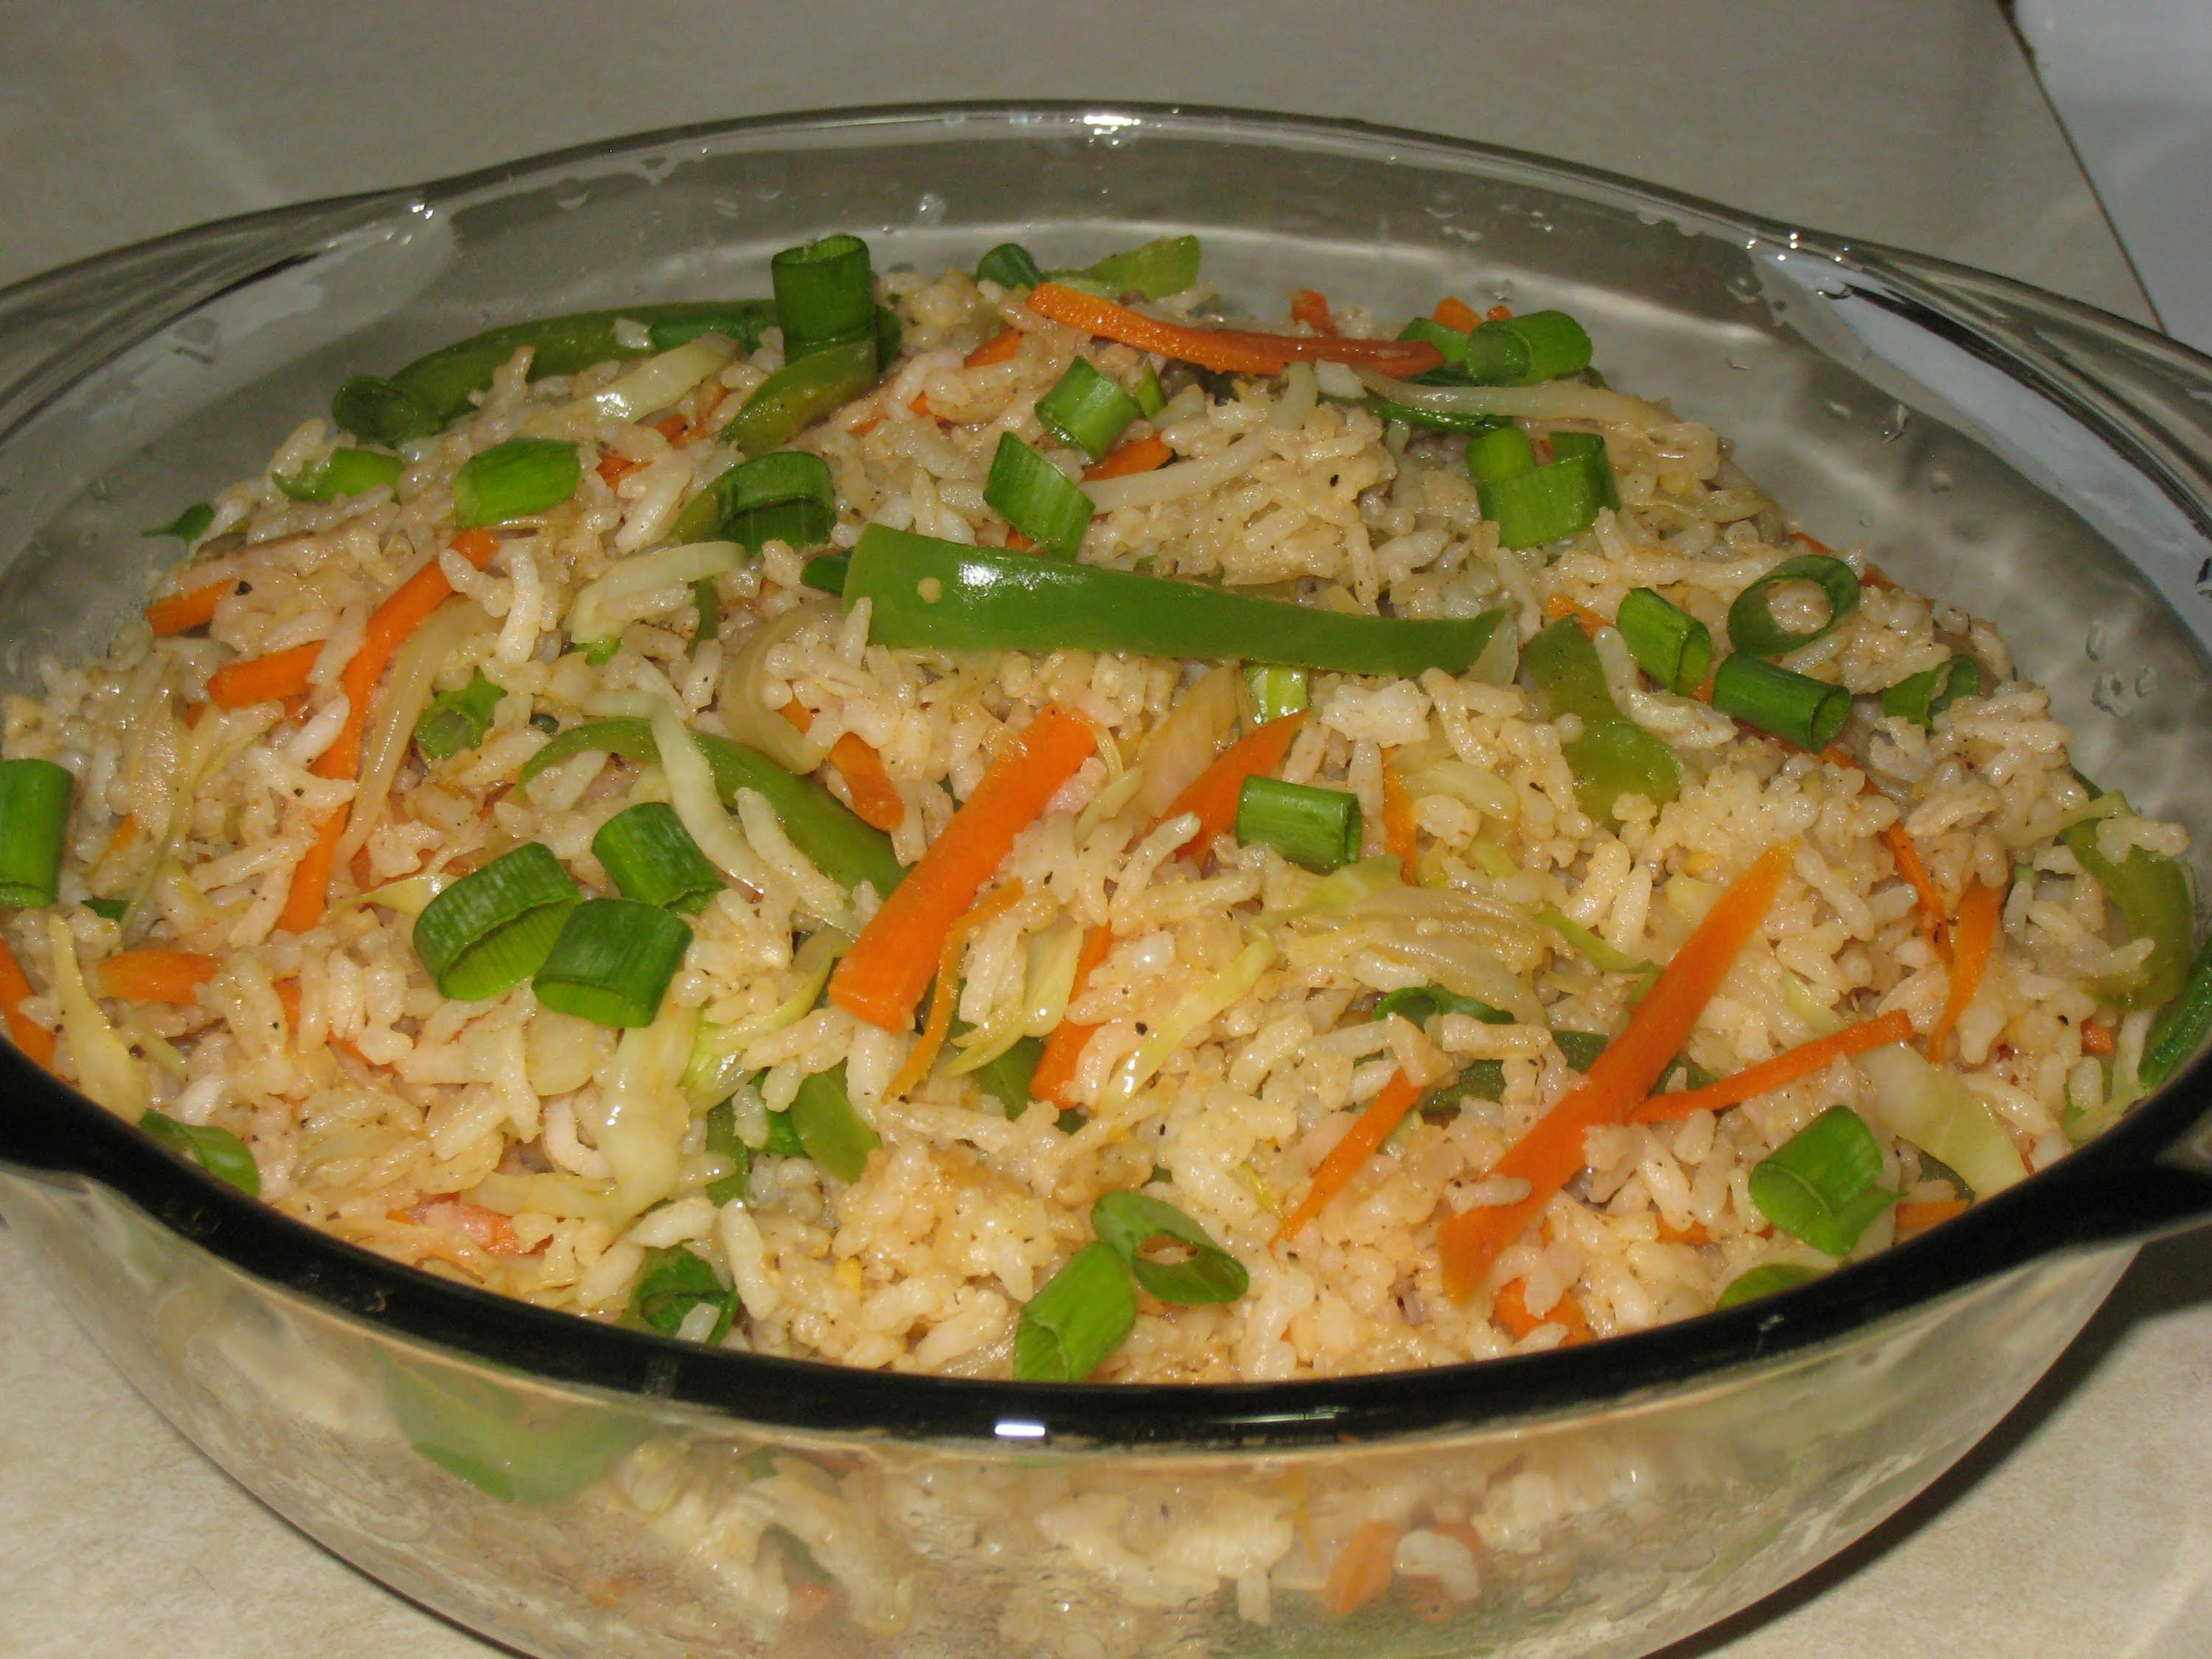 Vegetable fried rice recipe how to make vegetable fried rice recipe forumfinder Gallery